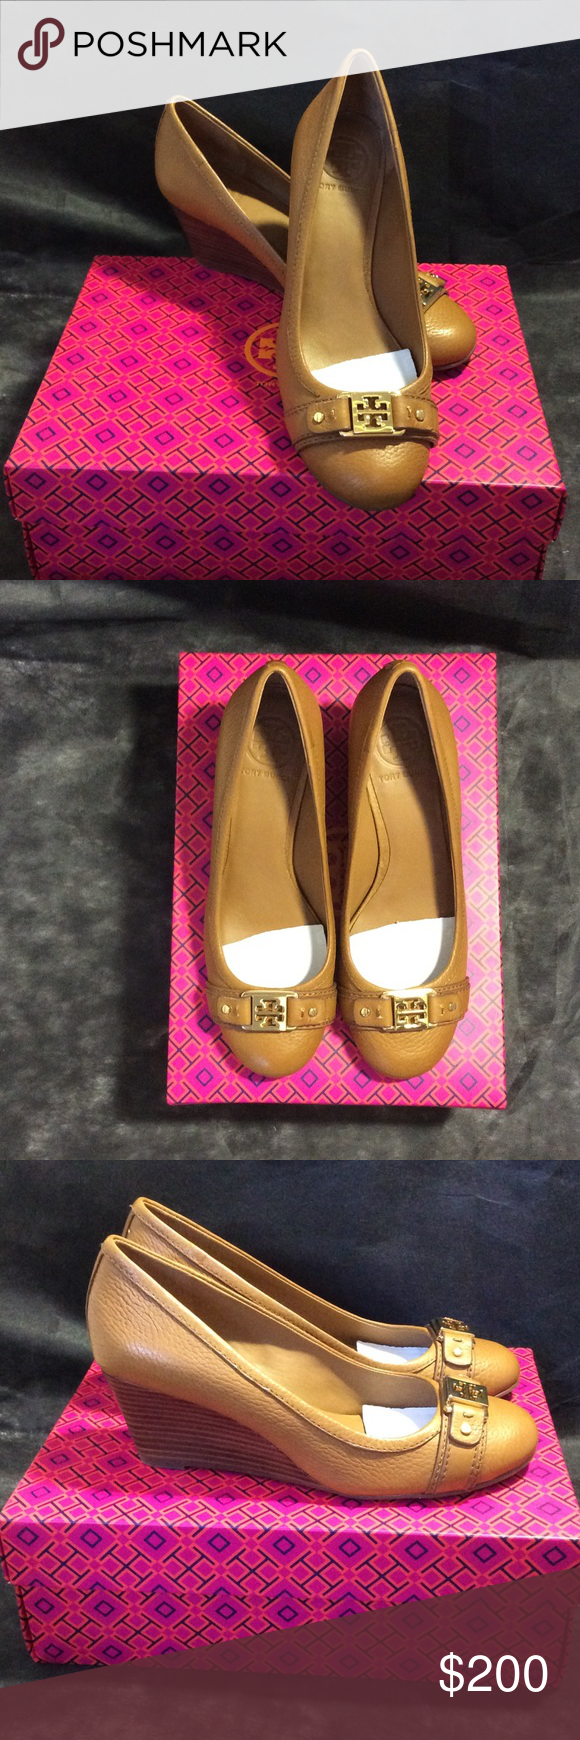 New in Box ToryBurch Royal Tan Ambrose 65 MM Wedge Tumbled Leather, Royal Tan. available size 7 and 7.5 (minor scratch unnoticeable) Tory Burch Shoes Wedges